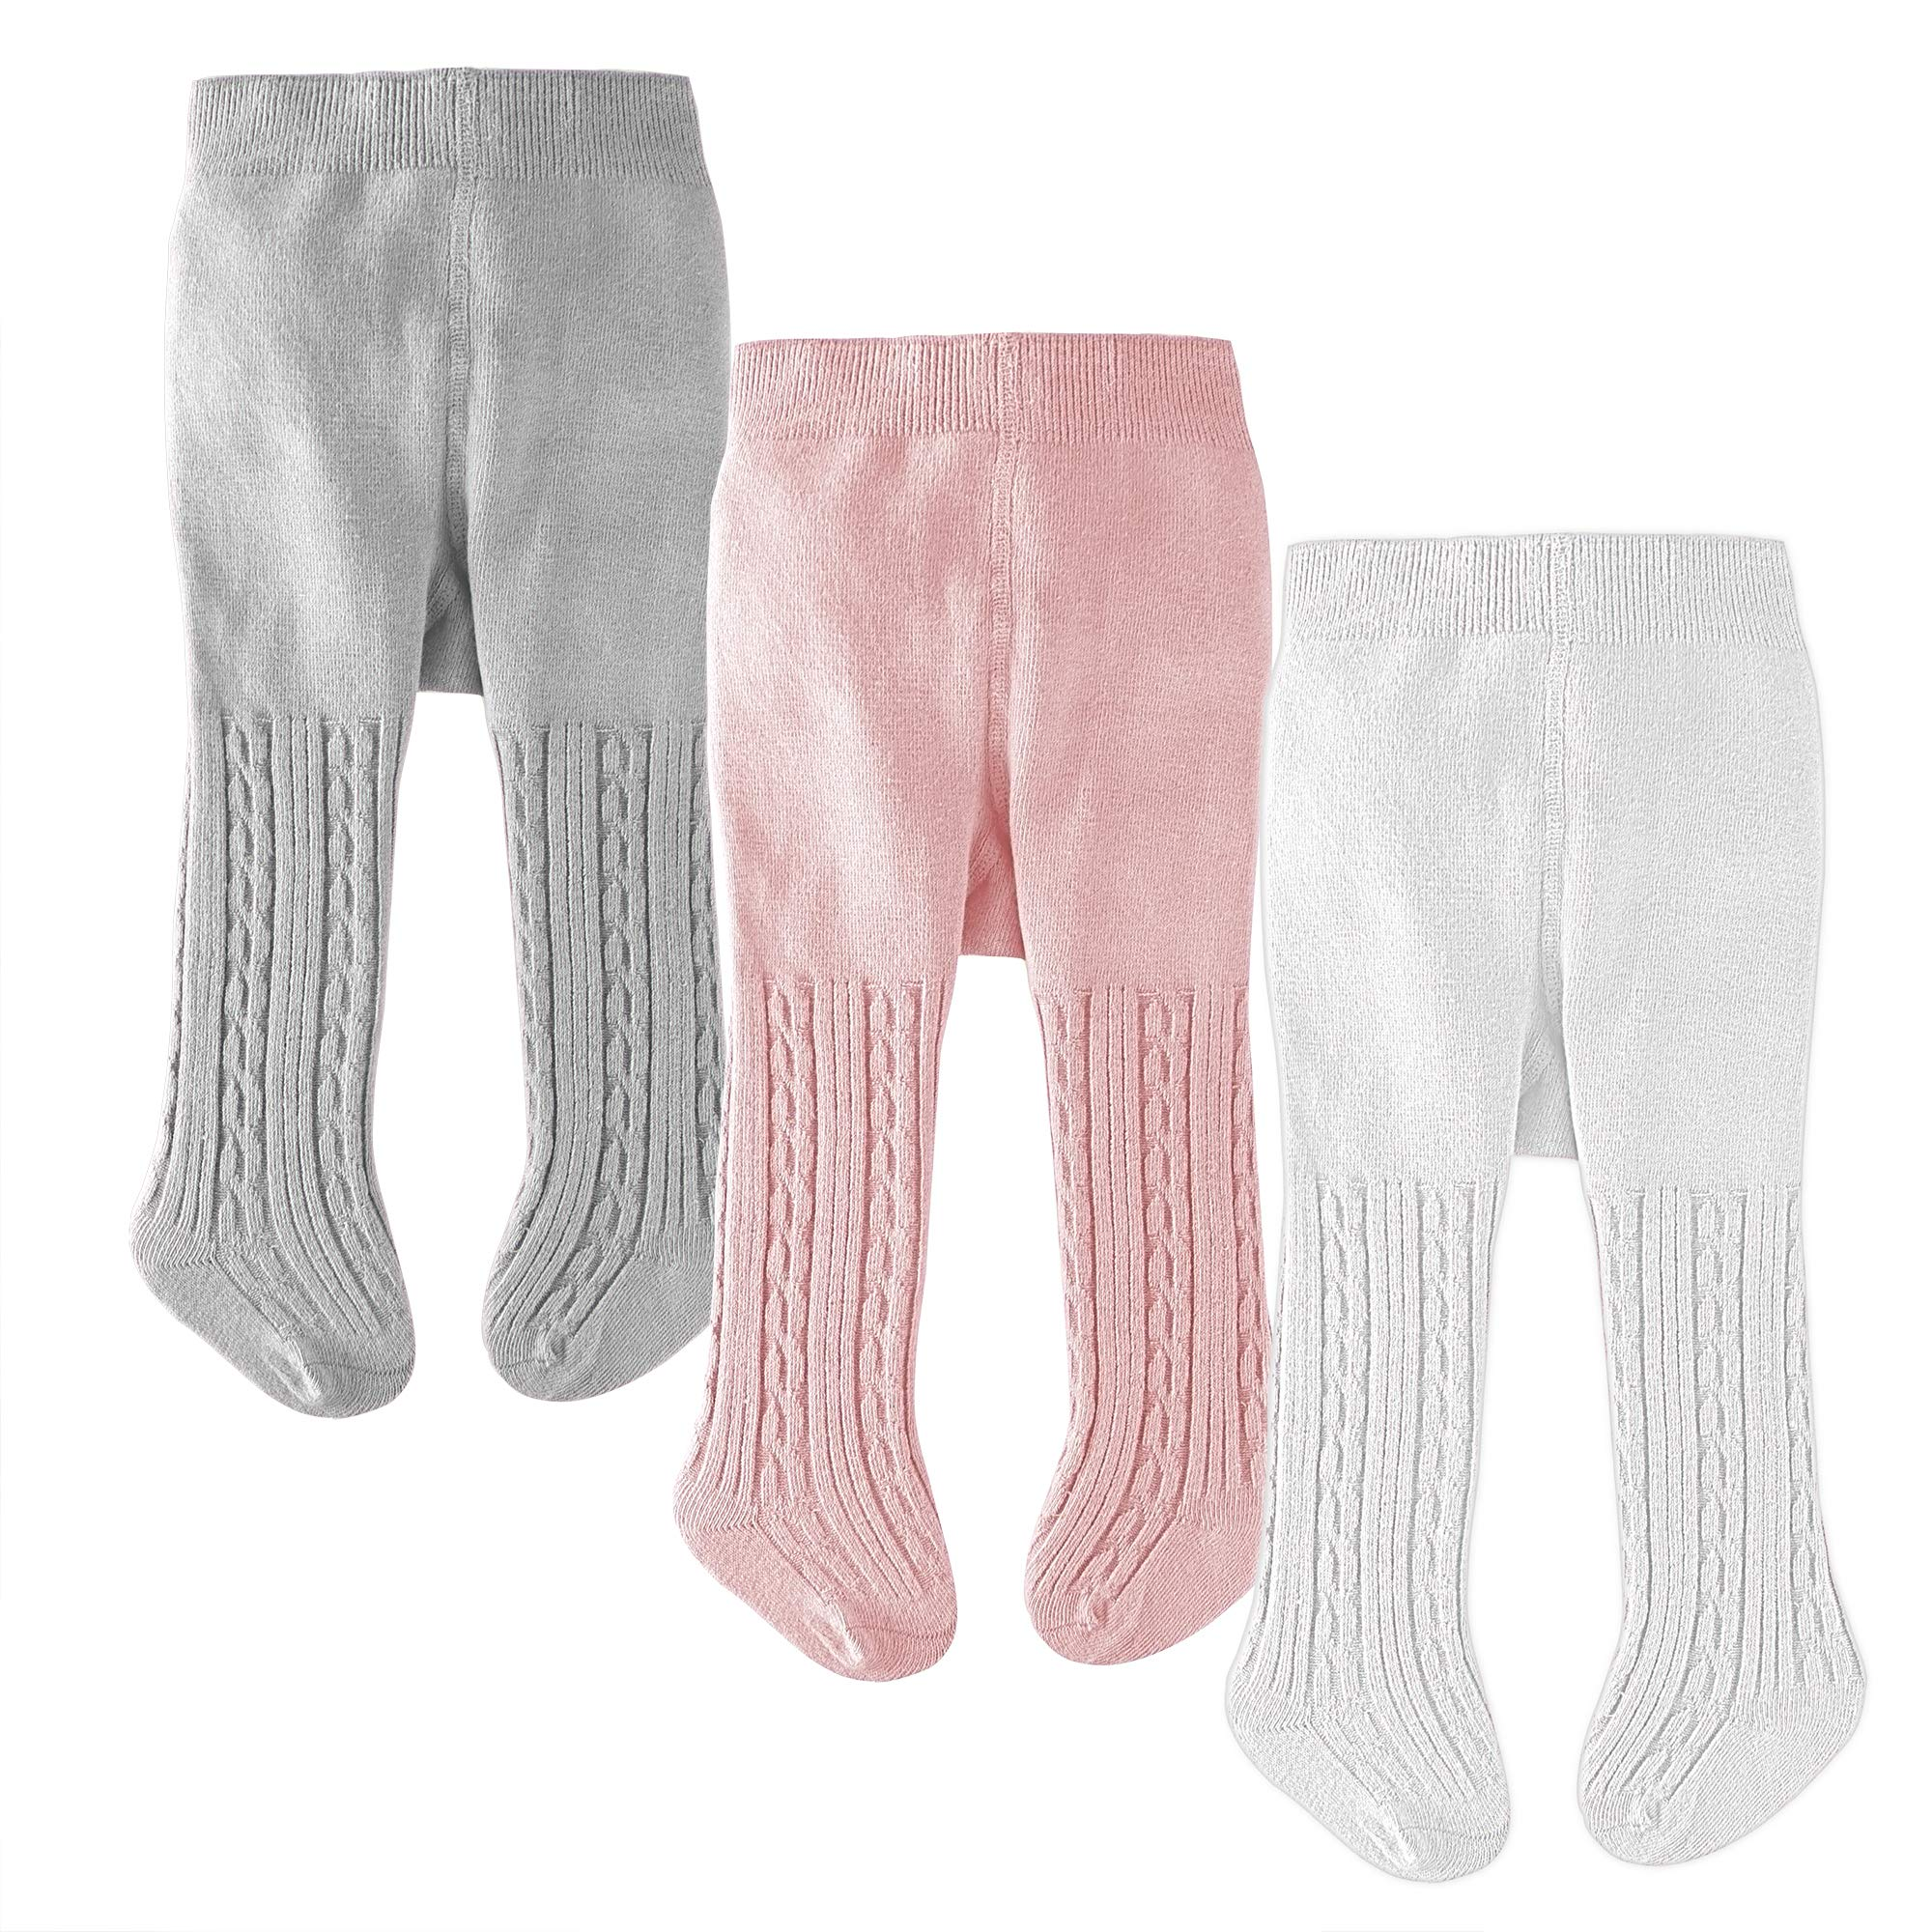 slaixiu Cotton Baby Girl Tights Cable Knit Seamless Toddler Leggings Pantyhose Pants Stockings 3-Pack(White&Pink&Gray_0-6 M)